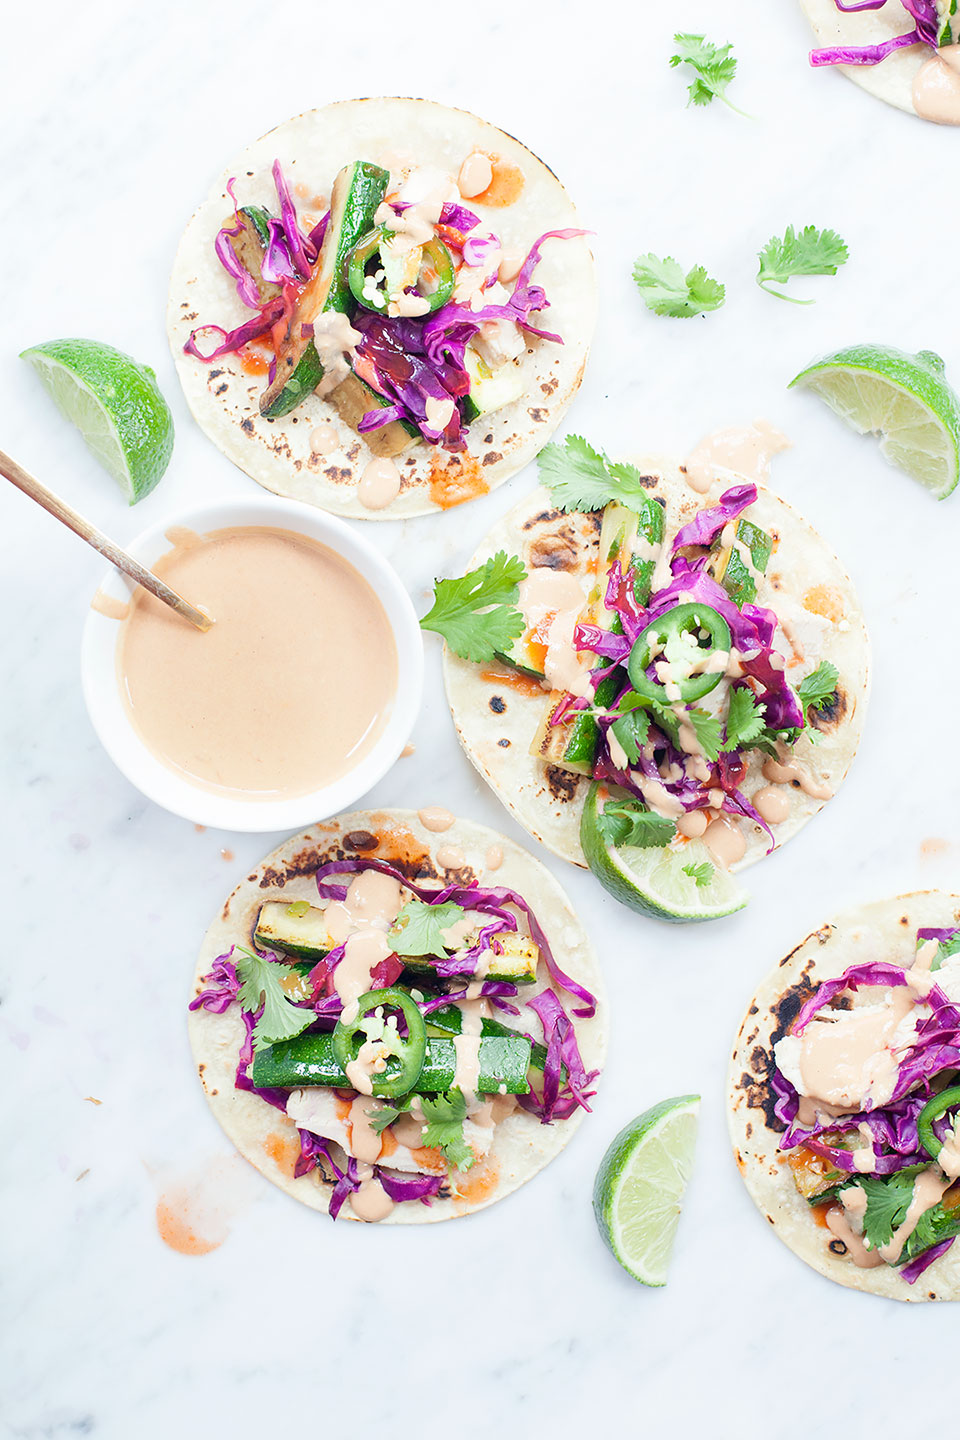 Roasted Squash Tacos with Chipotle Tahini Crema | Easy meal prep recipe that's vegan, vegetarian, and gluten-free. | Loveleaf Co.